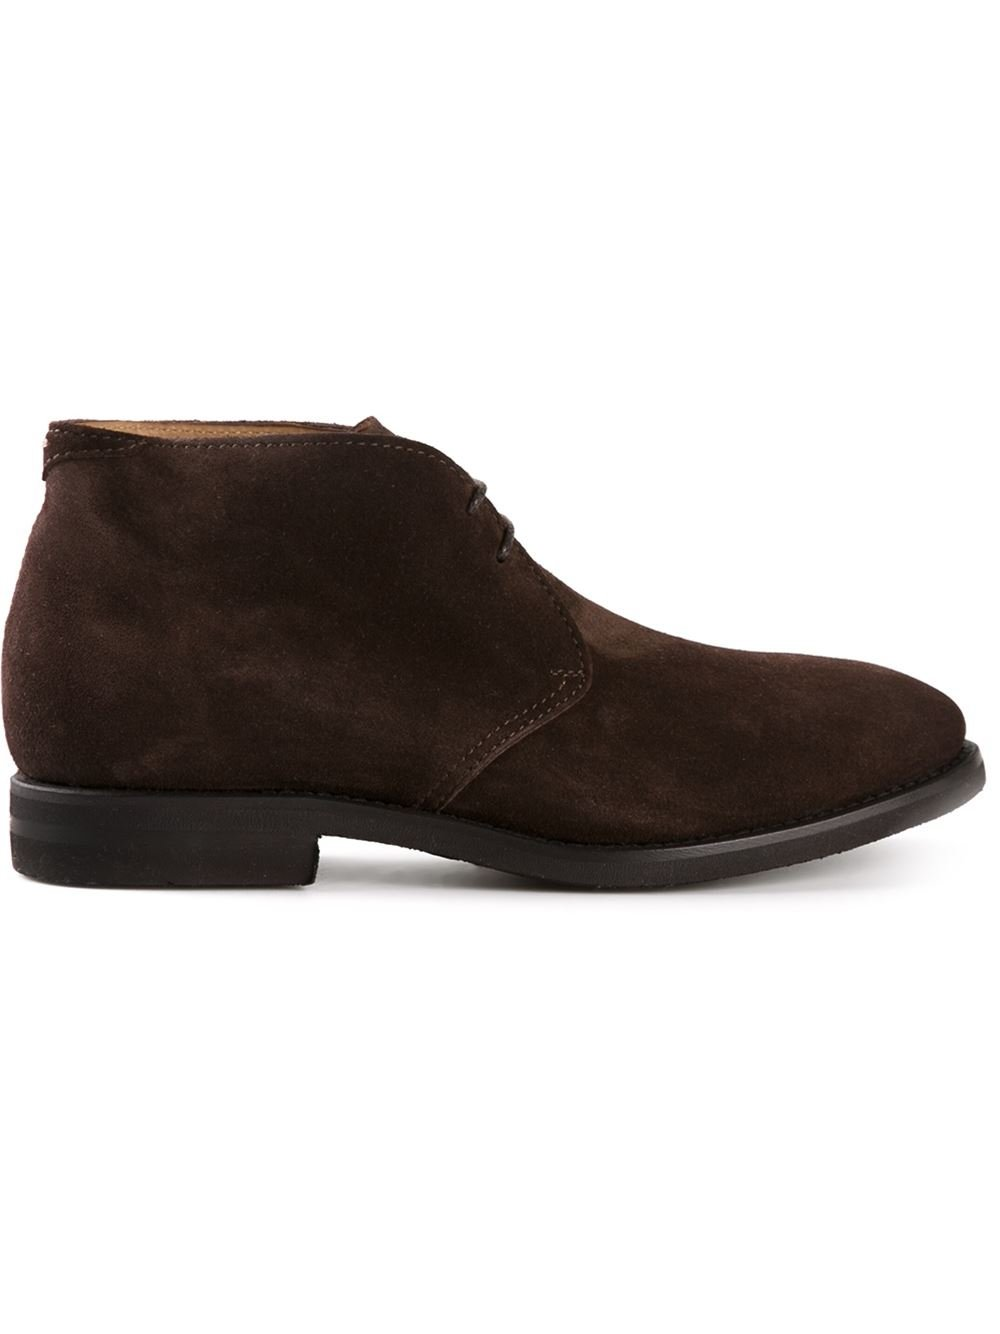 Brunello Cucinelli Chukka Boots In Brown For Men Lyst